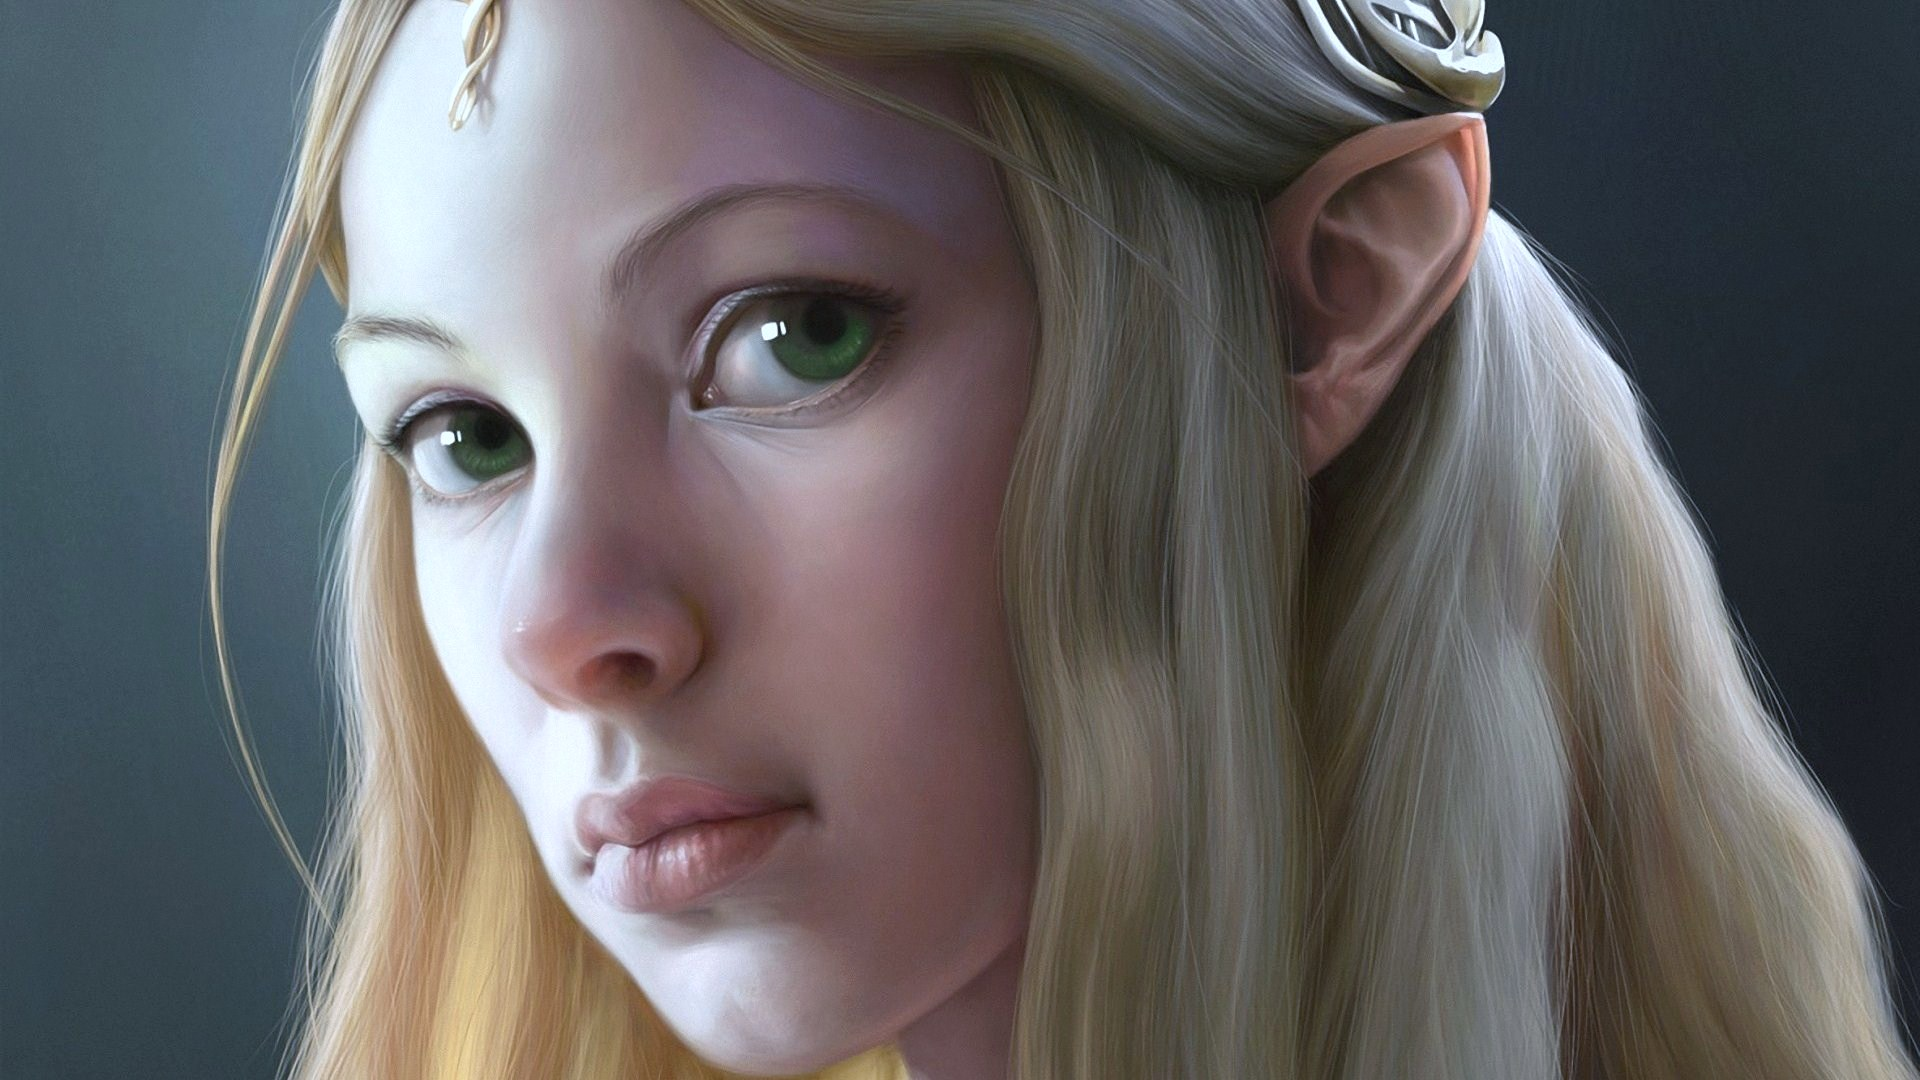 fantasy-elf-green-eyes-beautiful-girl-blonde-face-female-1920x1080